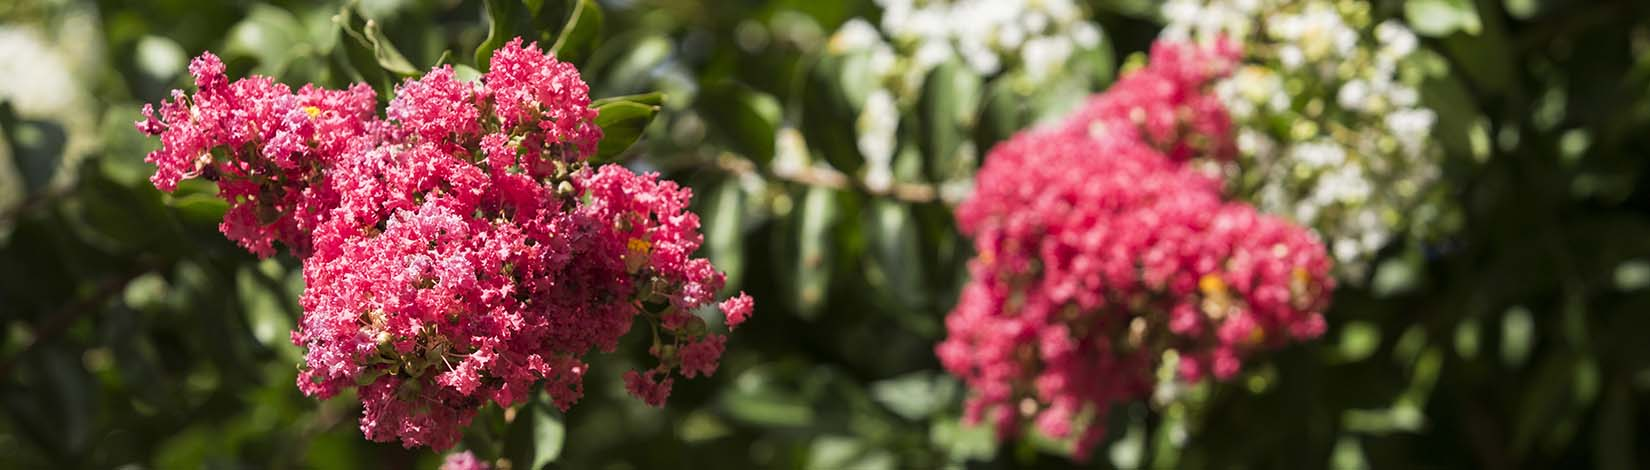 Crape myrtle pruning should typically be minimal